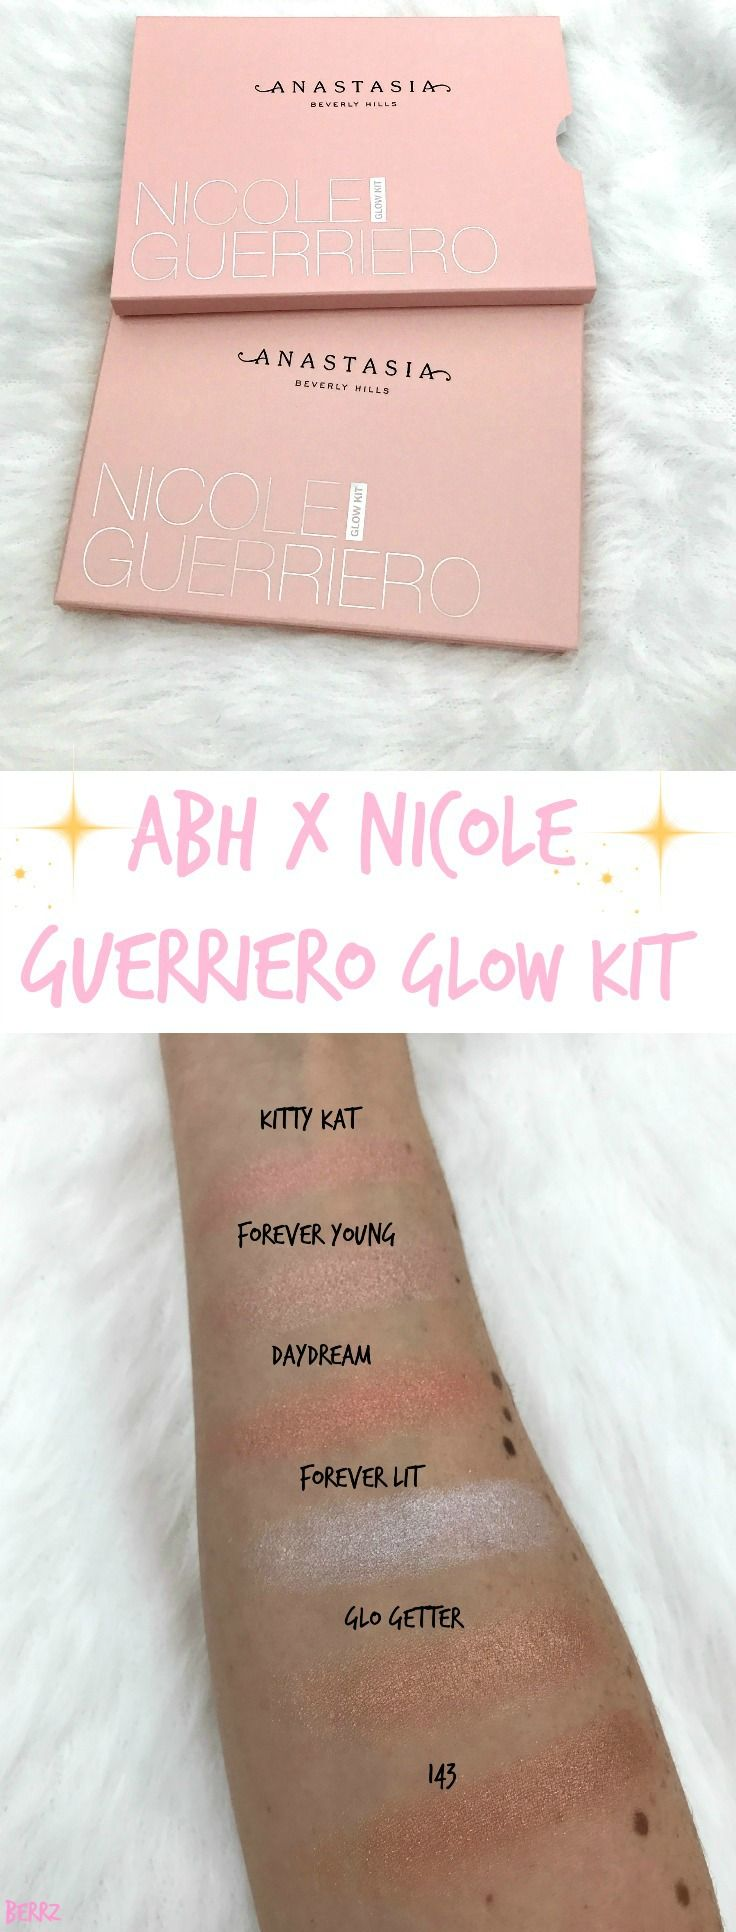 Nicole Guerriero X Anastasia Beverly Hills Glow Kit Review & Swatches >  Http